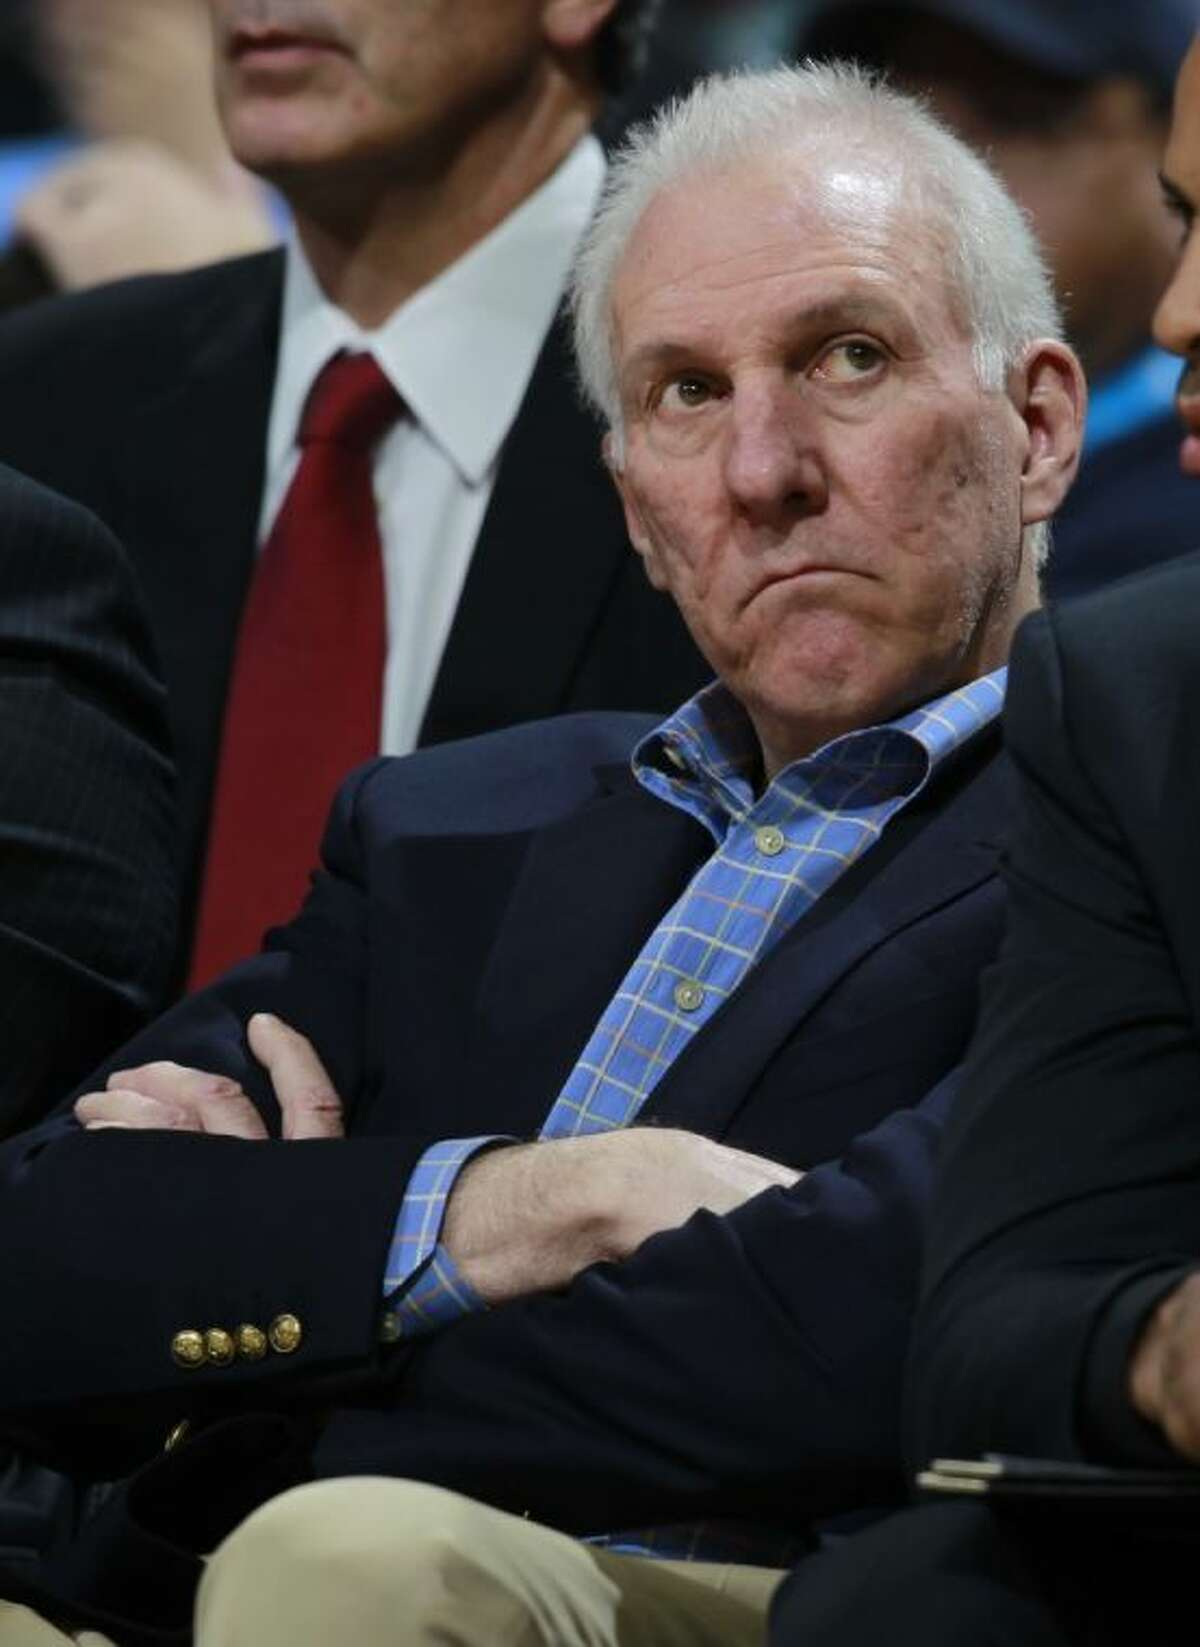 San Antonio Spurs coach Gregg Popovich reacts as he checks the scoreboard as time winds down in the fourth quarter of the Denver Nuggets' 98-94 victory over the Spurs in a preseason game on Oct. 14 in Denver.